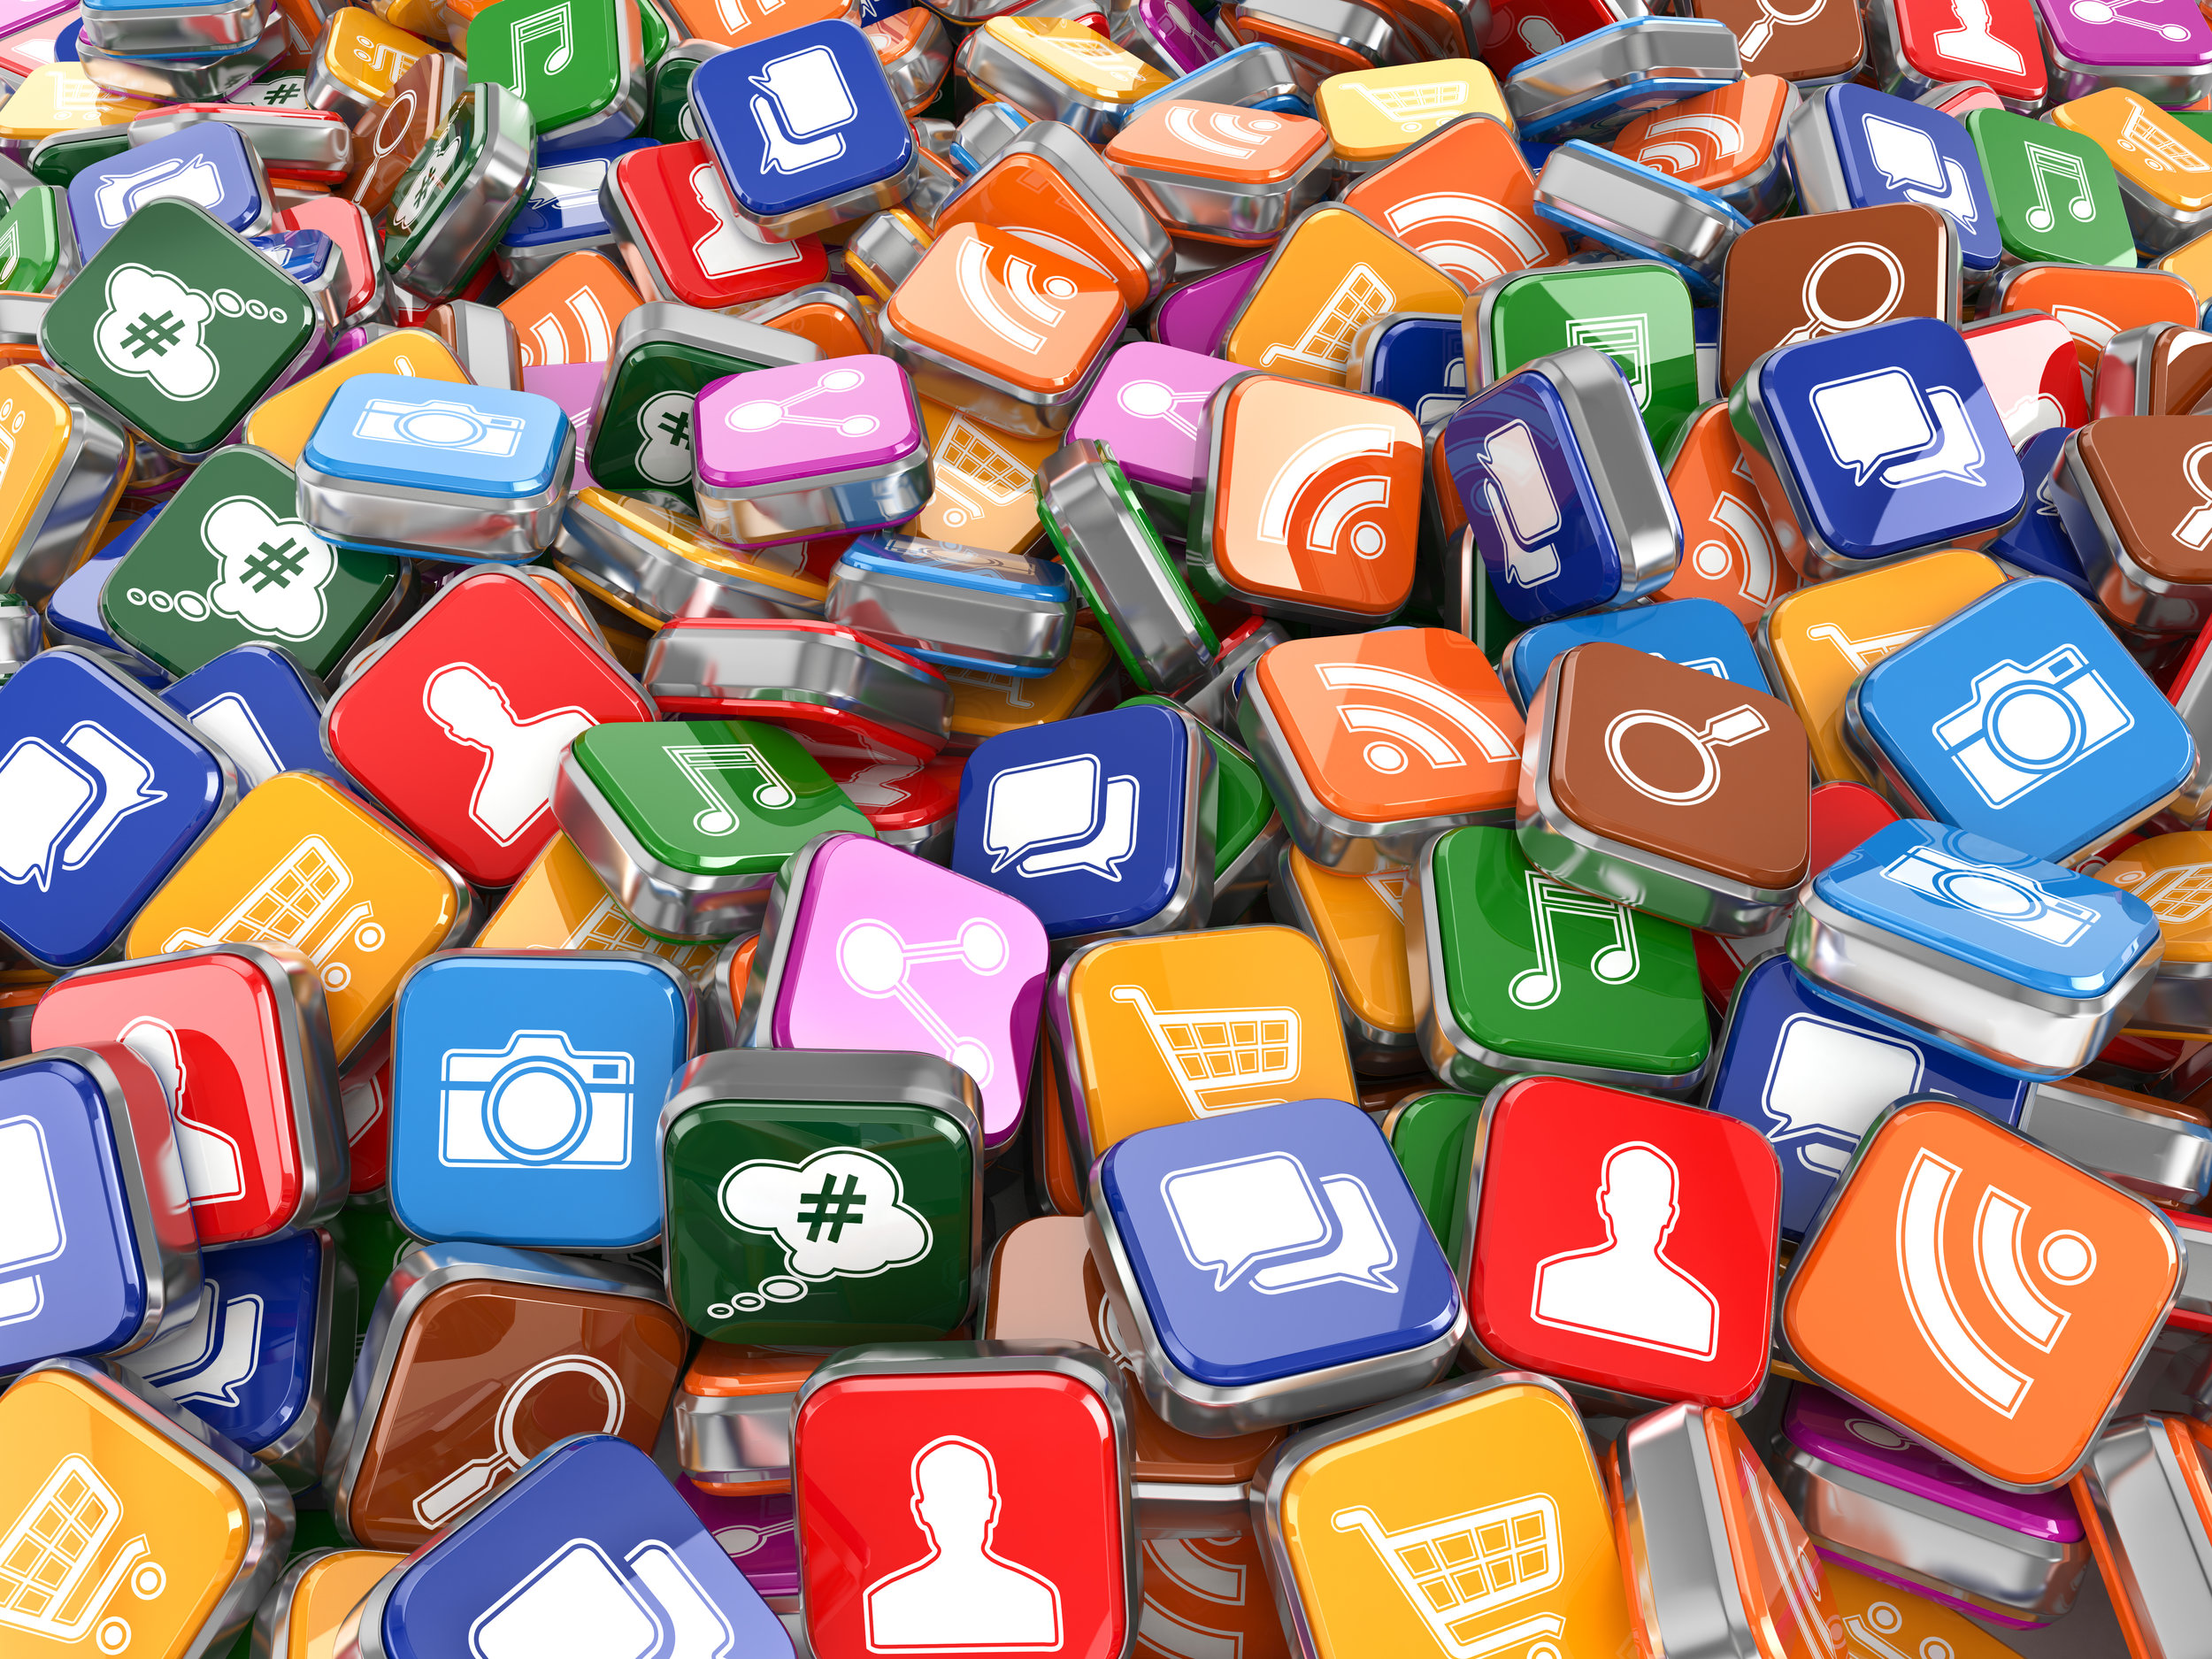 What You Should Know When Planning Development Of Your Mobile Apps